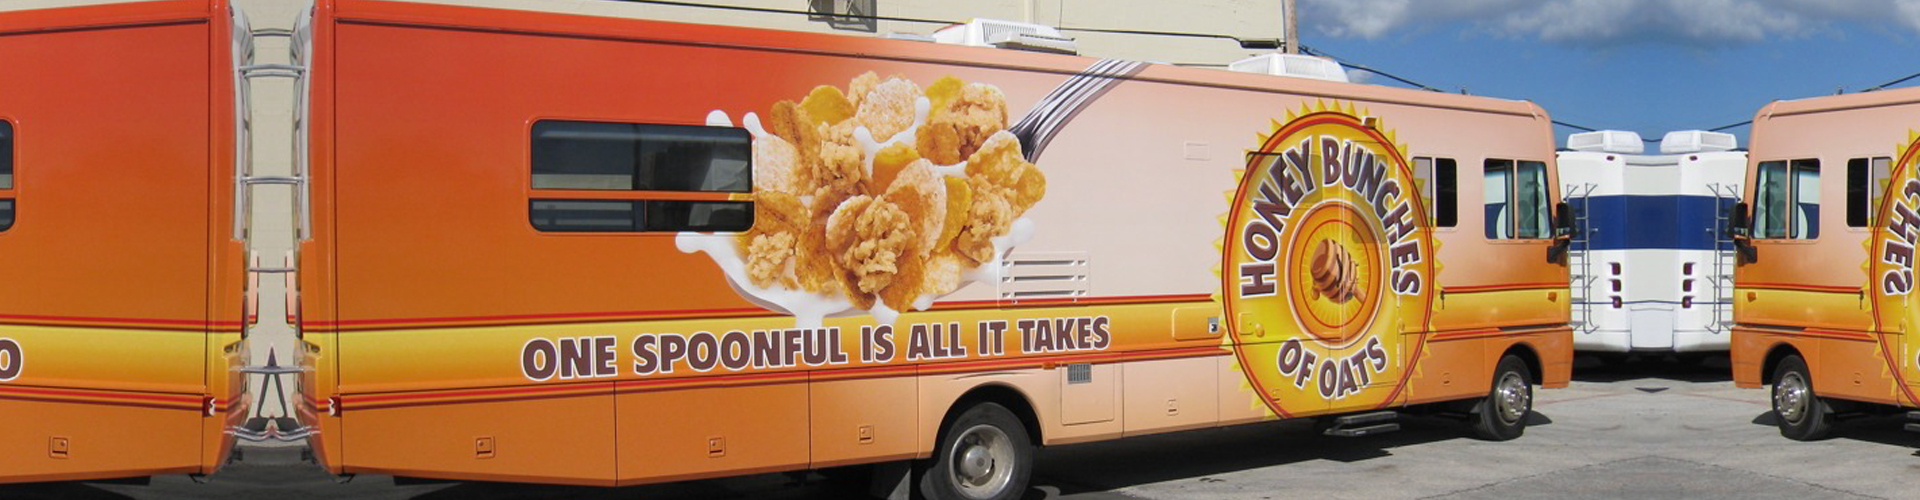 a bus with oats wrap advertising